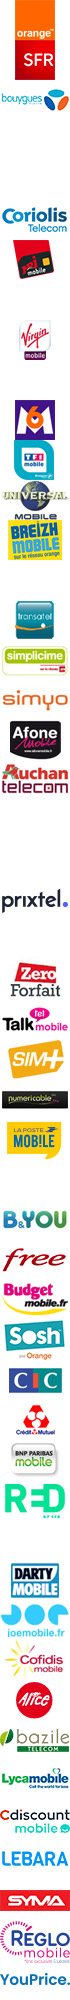 forfait NRJ Mobile Ultimate Speed 24/7 illimit� 24 mois